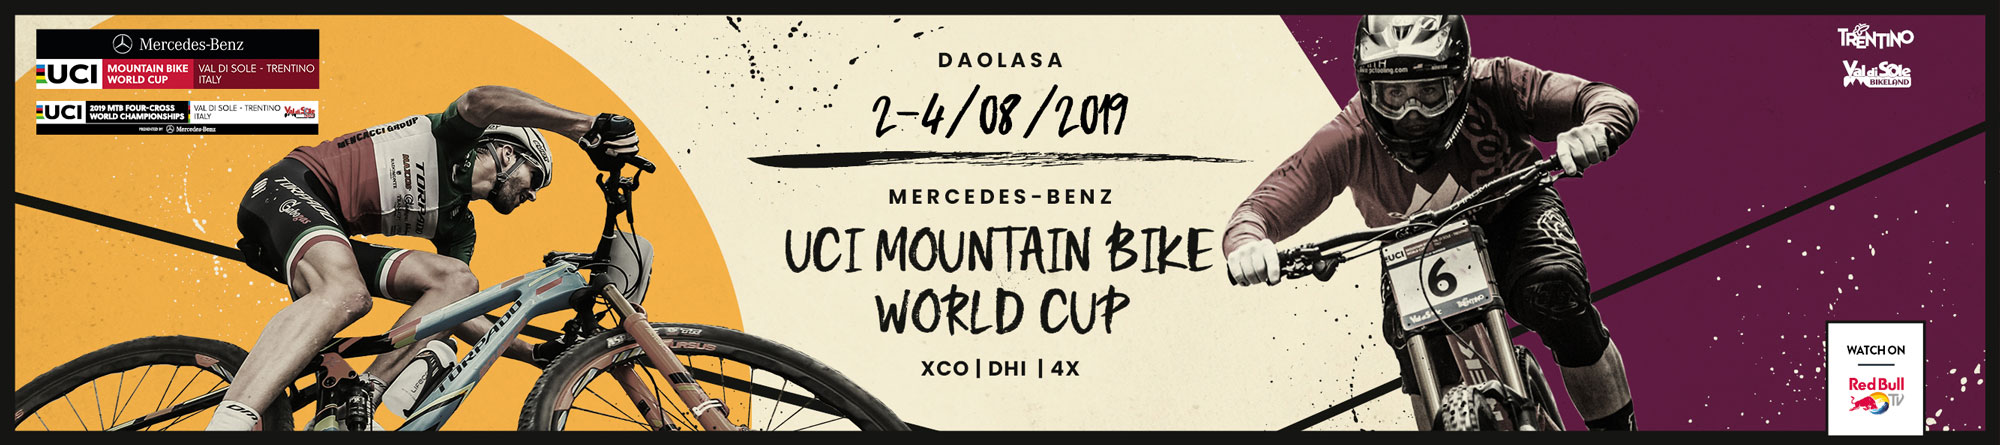 STARTING LISTS & RESULTS - UCI MTB WORLD CUP 2019